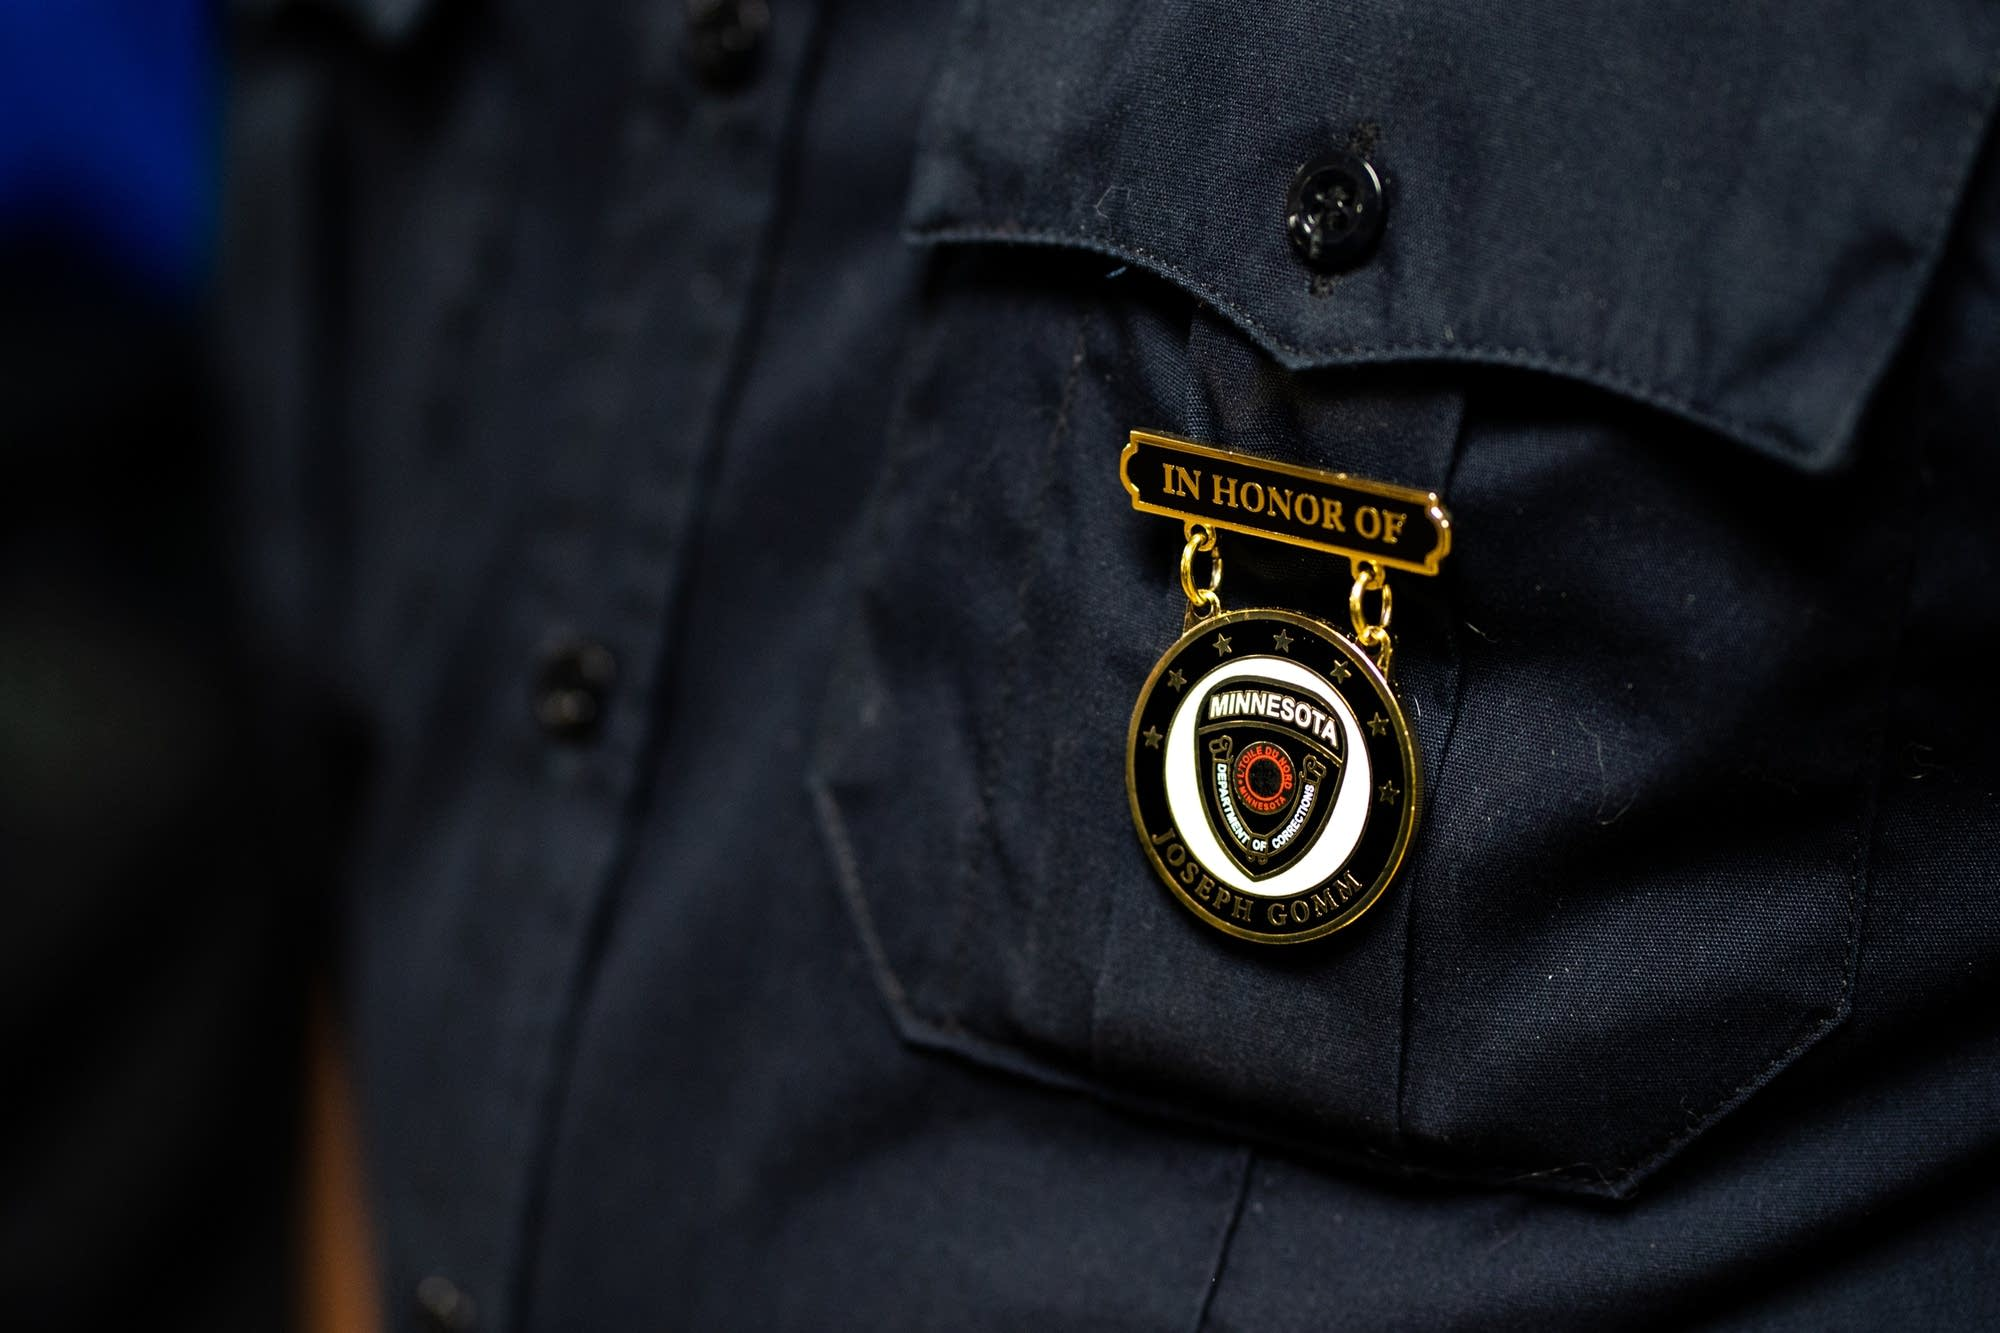 A corrections officer wears a pin commemorating Joseph Gomm.